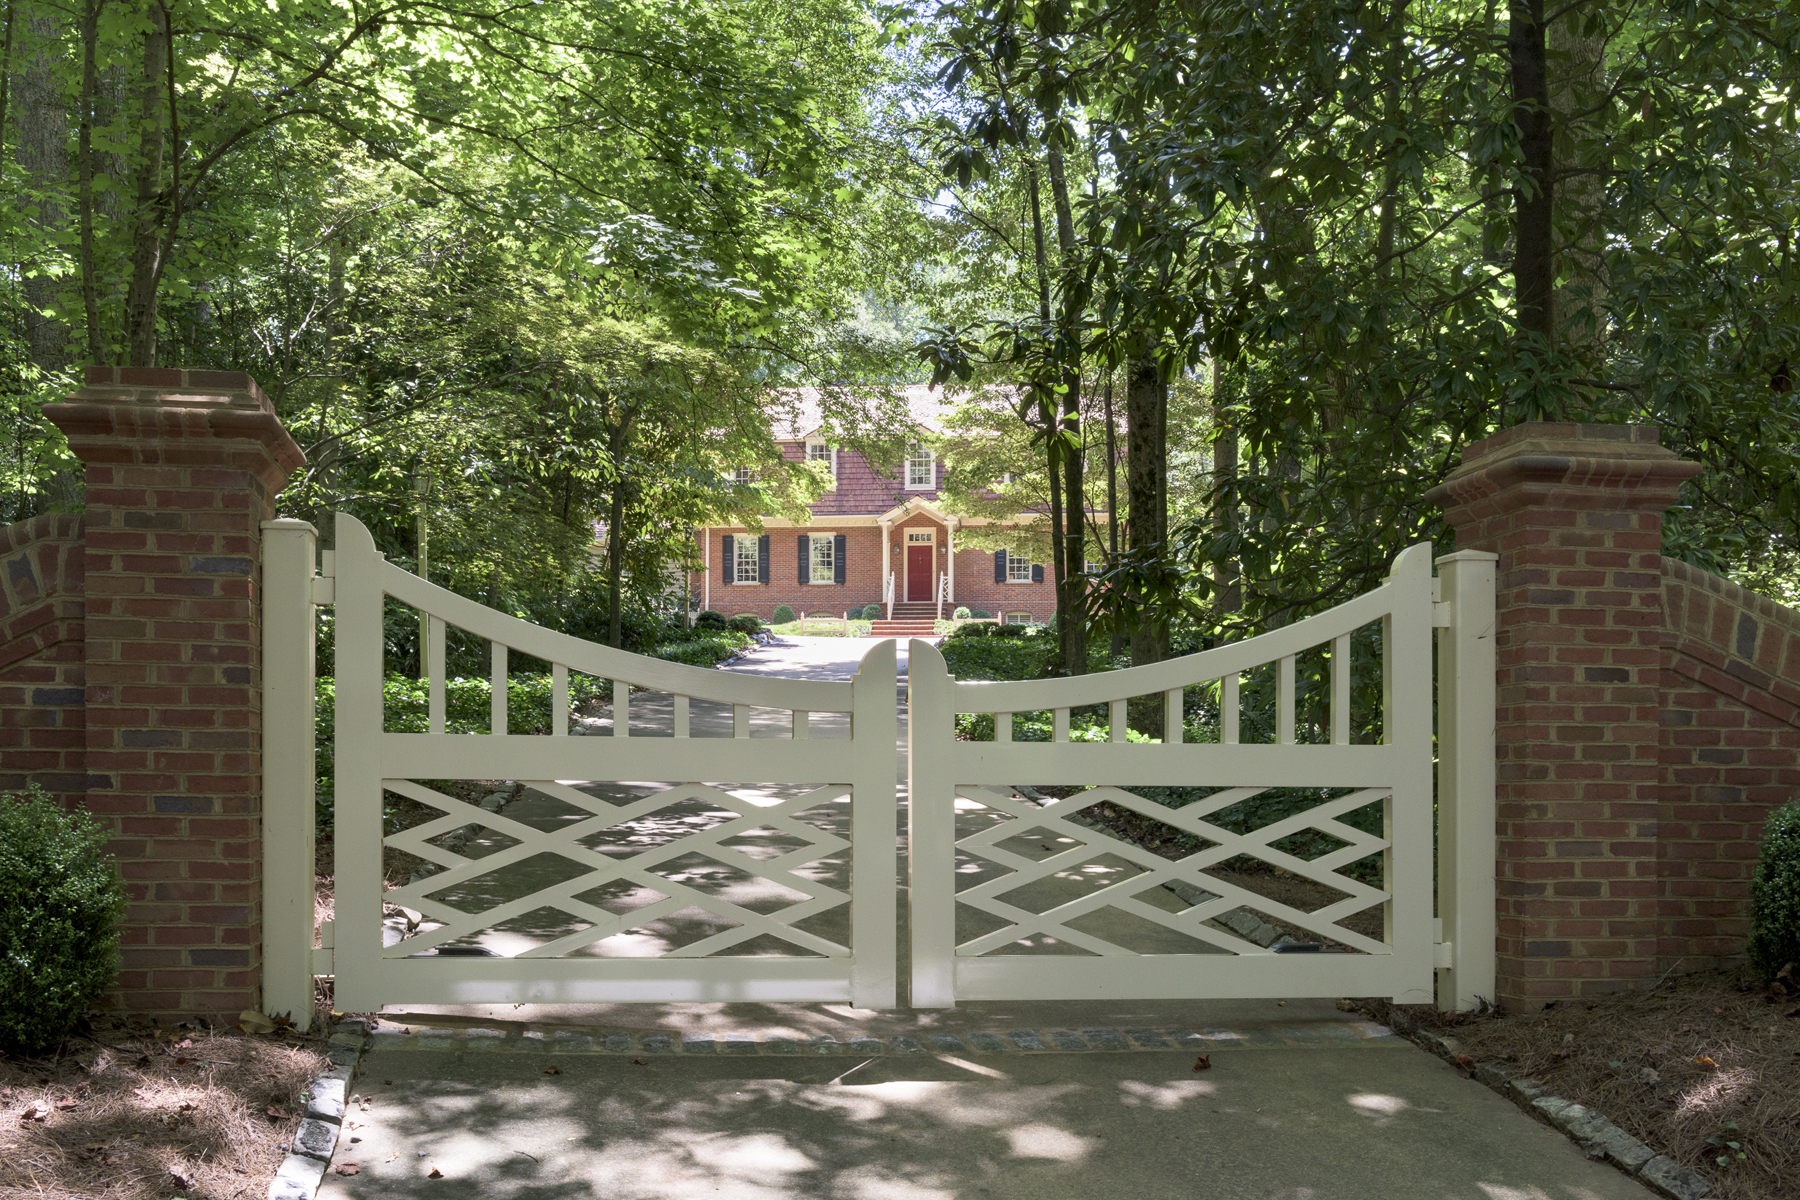 Частный односемейный дом для того Продажа на Charming Custom Built Gated Virginia Tidewater Estate 110 Austell Way NW Buckhead, Atlanta, Джорджия, 30305 Соединенные Штаты